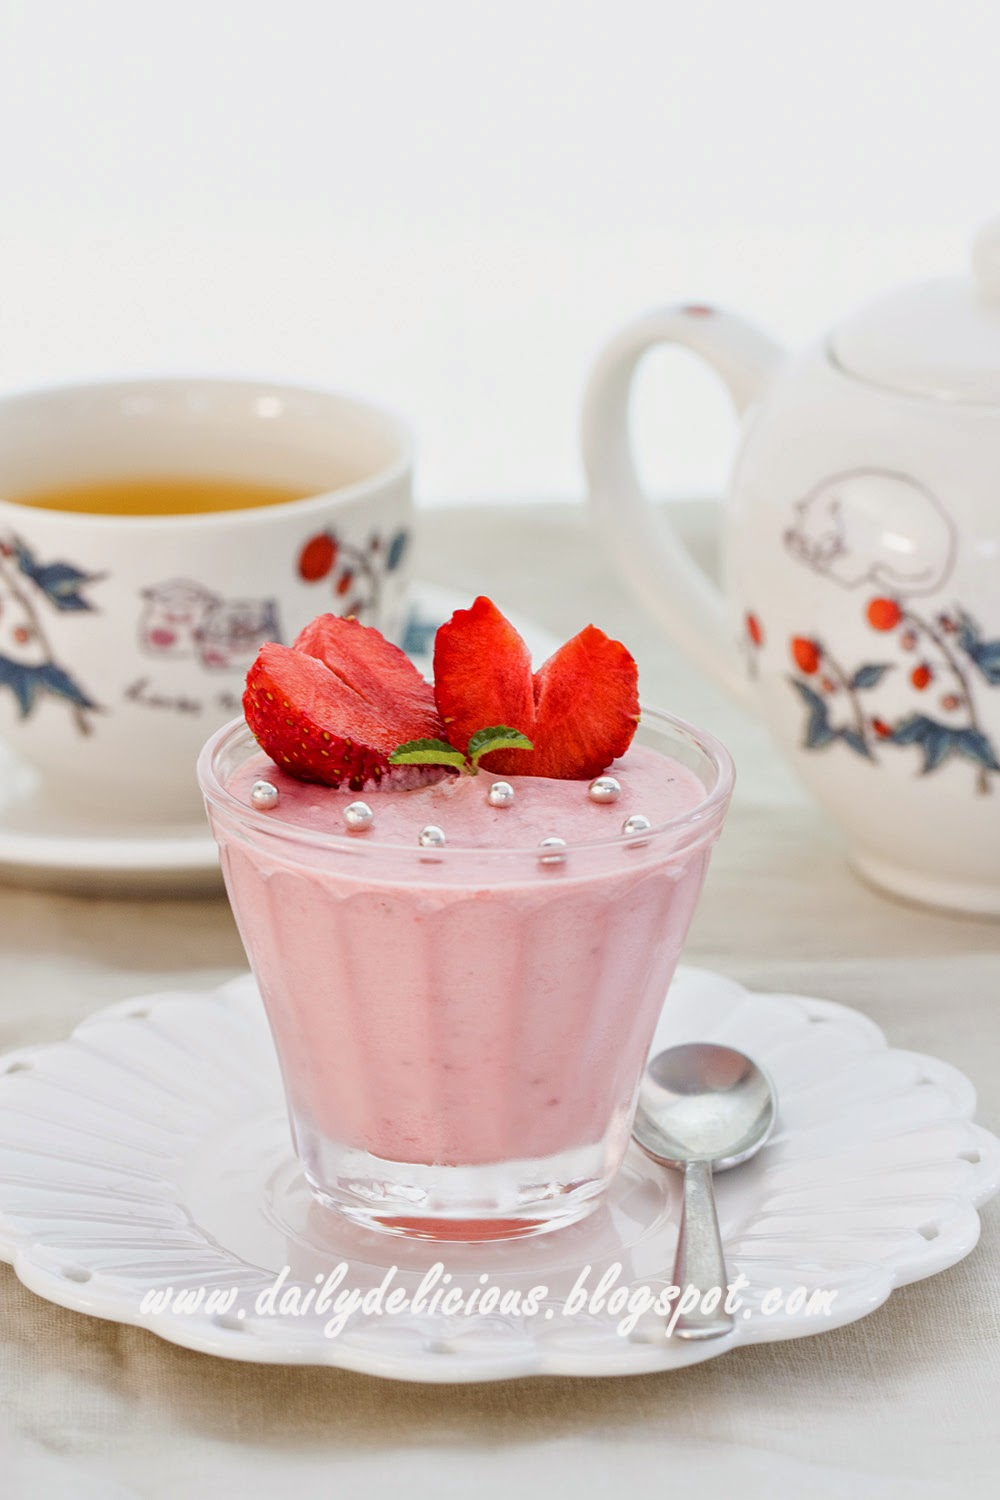 ... : For your Happy Valentine's day: Strawberry yogurt mousse or tart